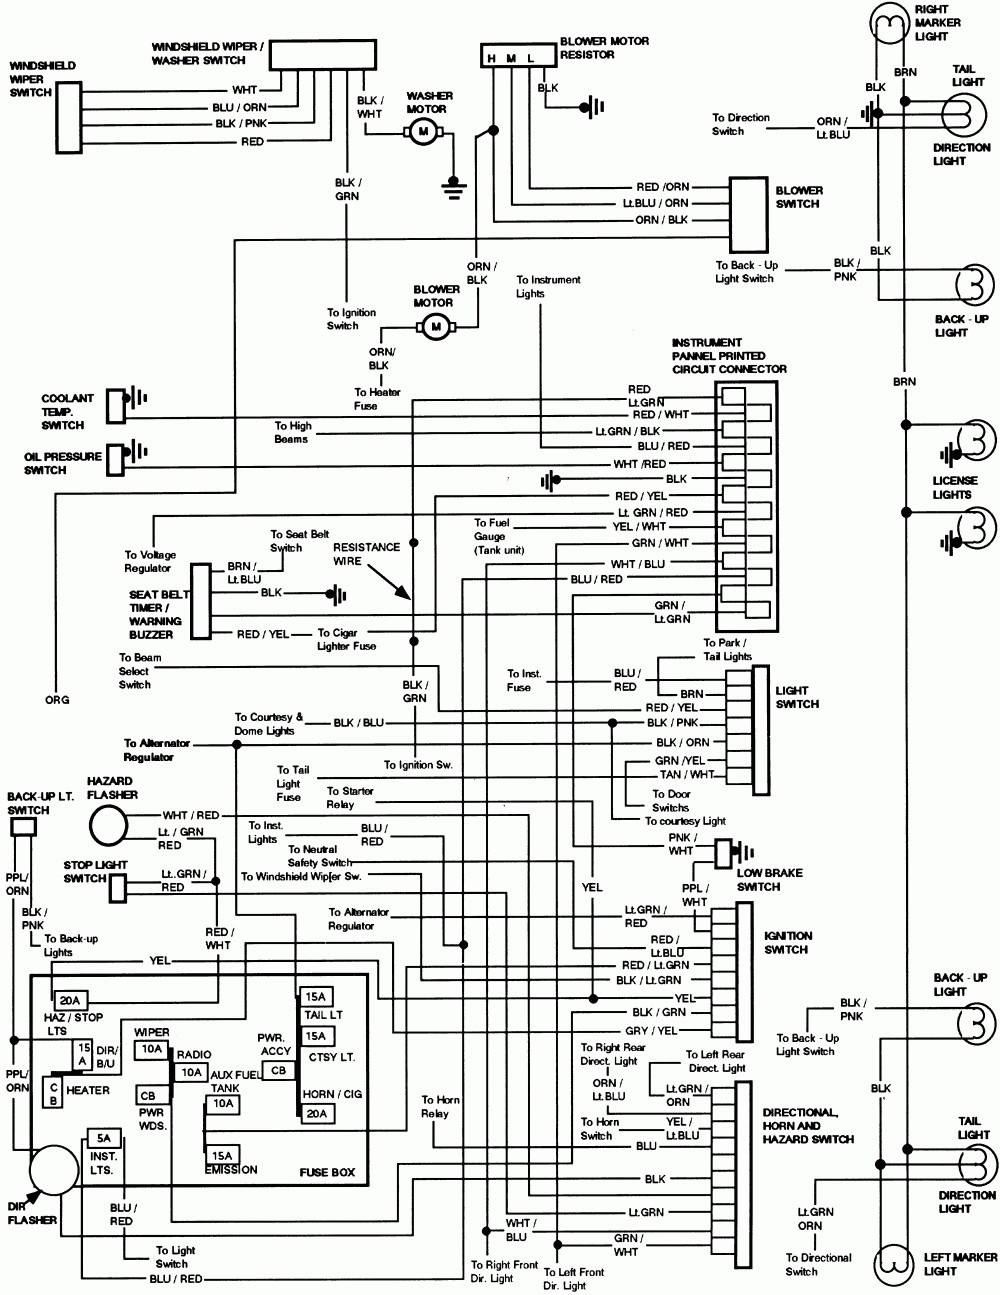 medium resolution of 2000 ford e 150 need starter wiring diagram wiring diagrams wiring 2000 ford econoline e150 wiring diagram 2000 ford e 150 wiring diagram